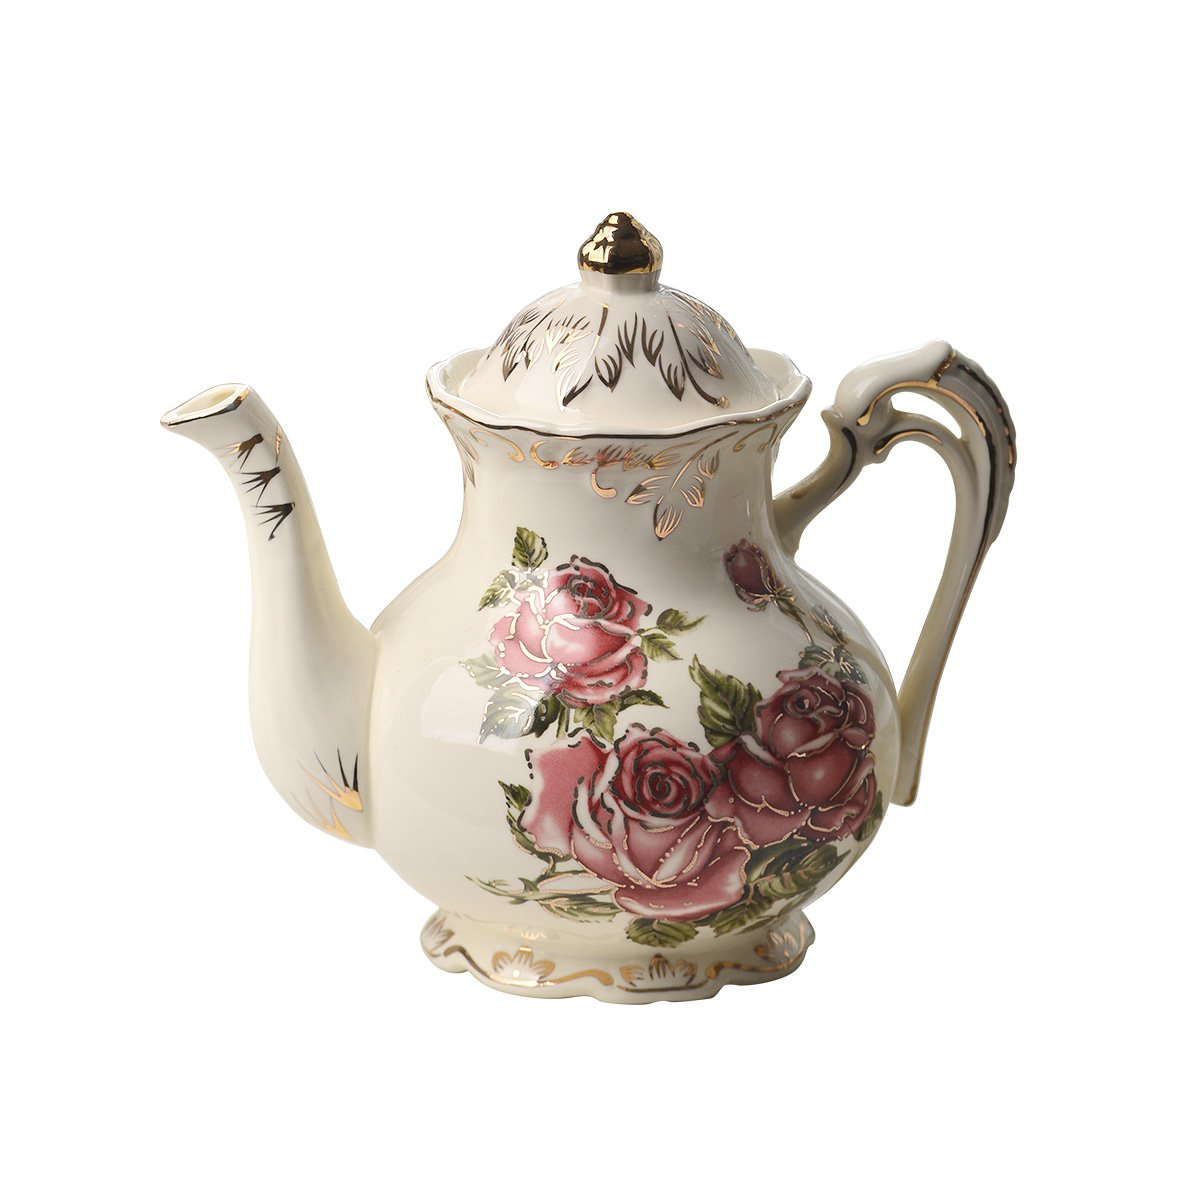 YOLIFE Red Rose Tea Pot, Ivory Ceramic Vintage Teapot with Gold Leaves Edge,For Women Gifts (29oz)